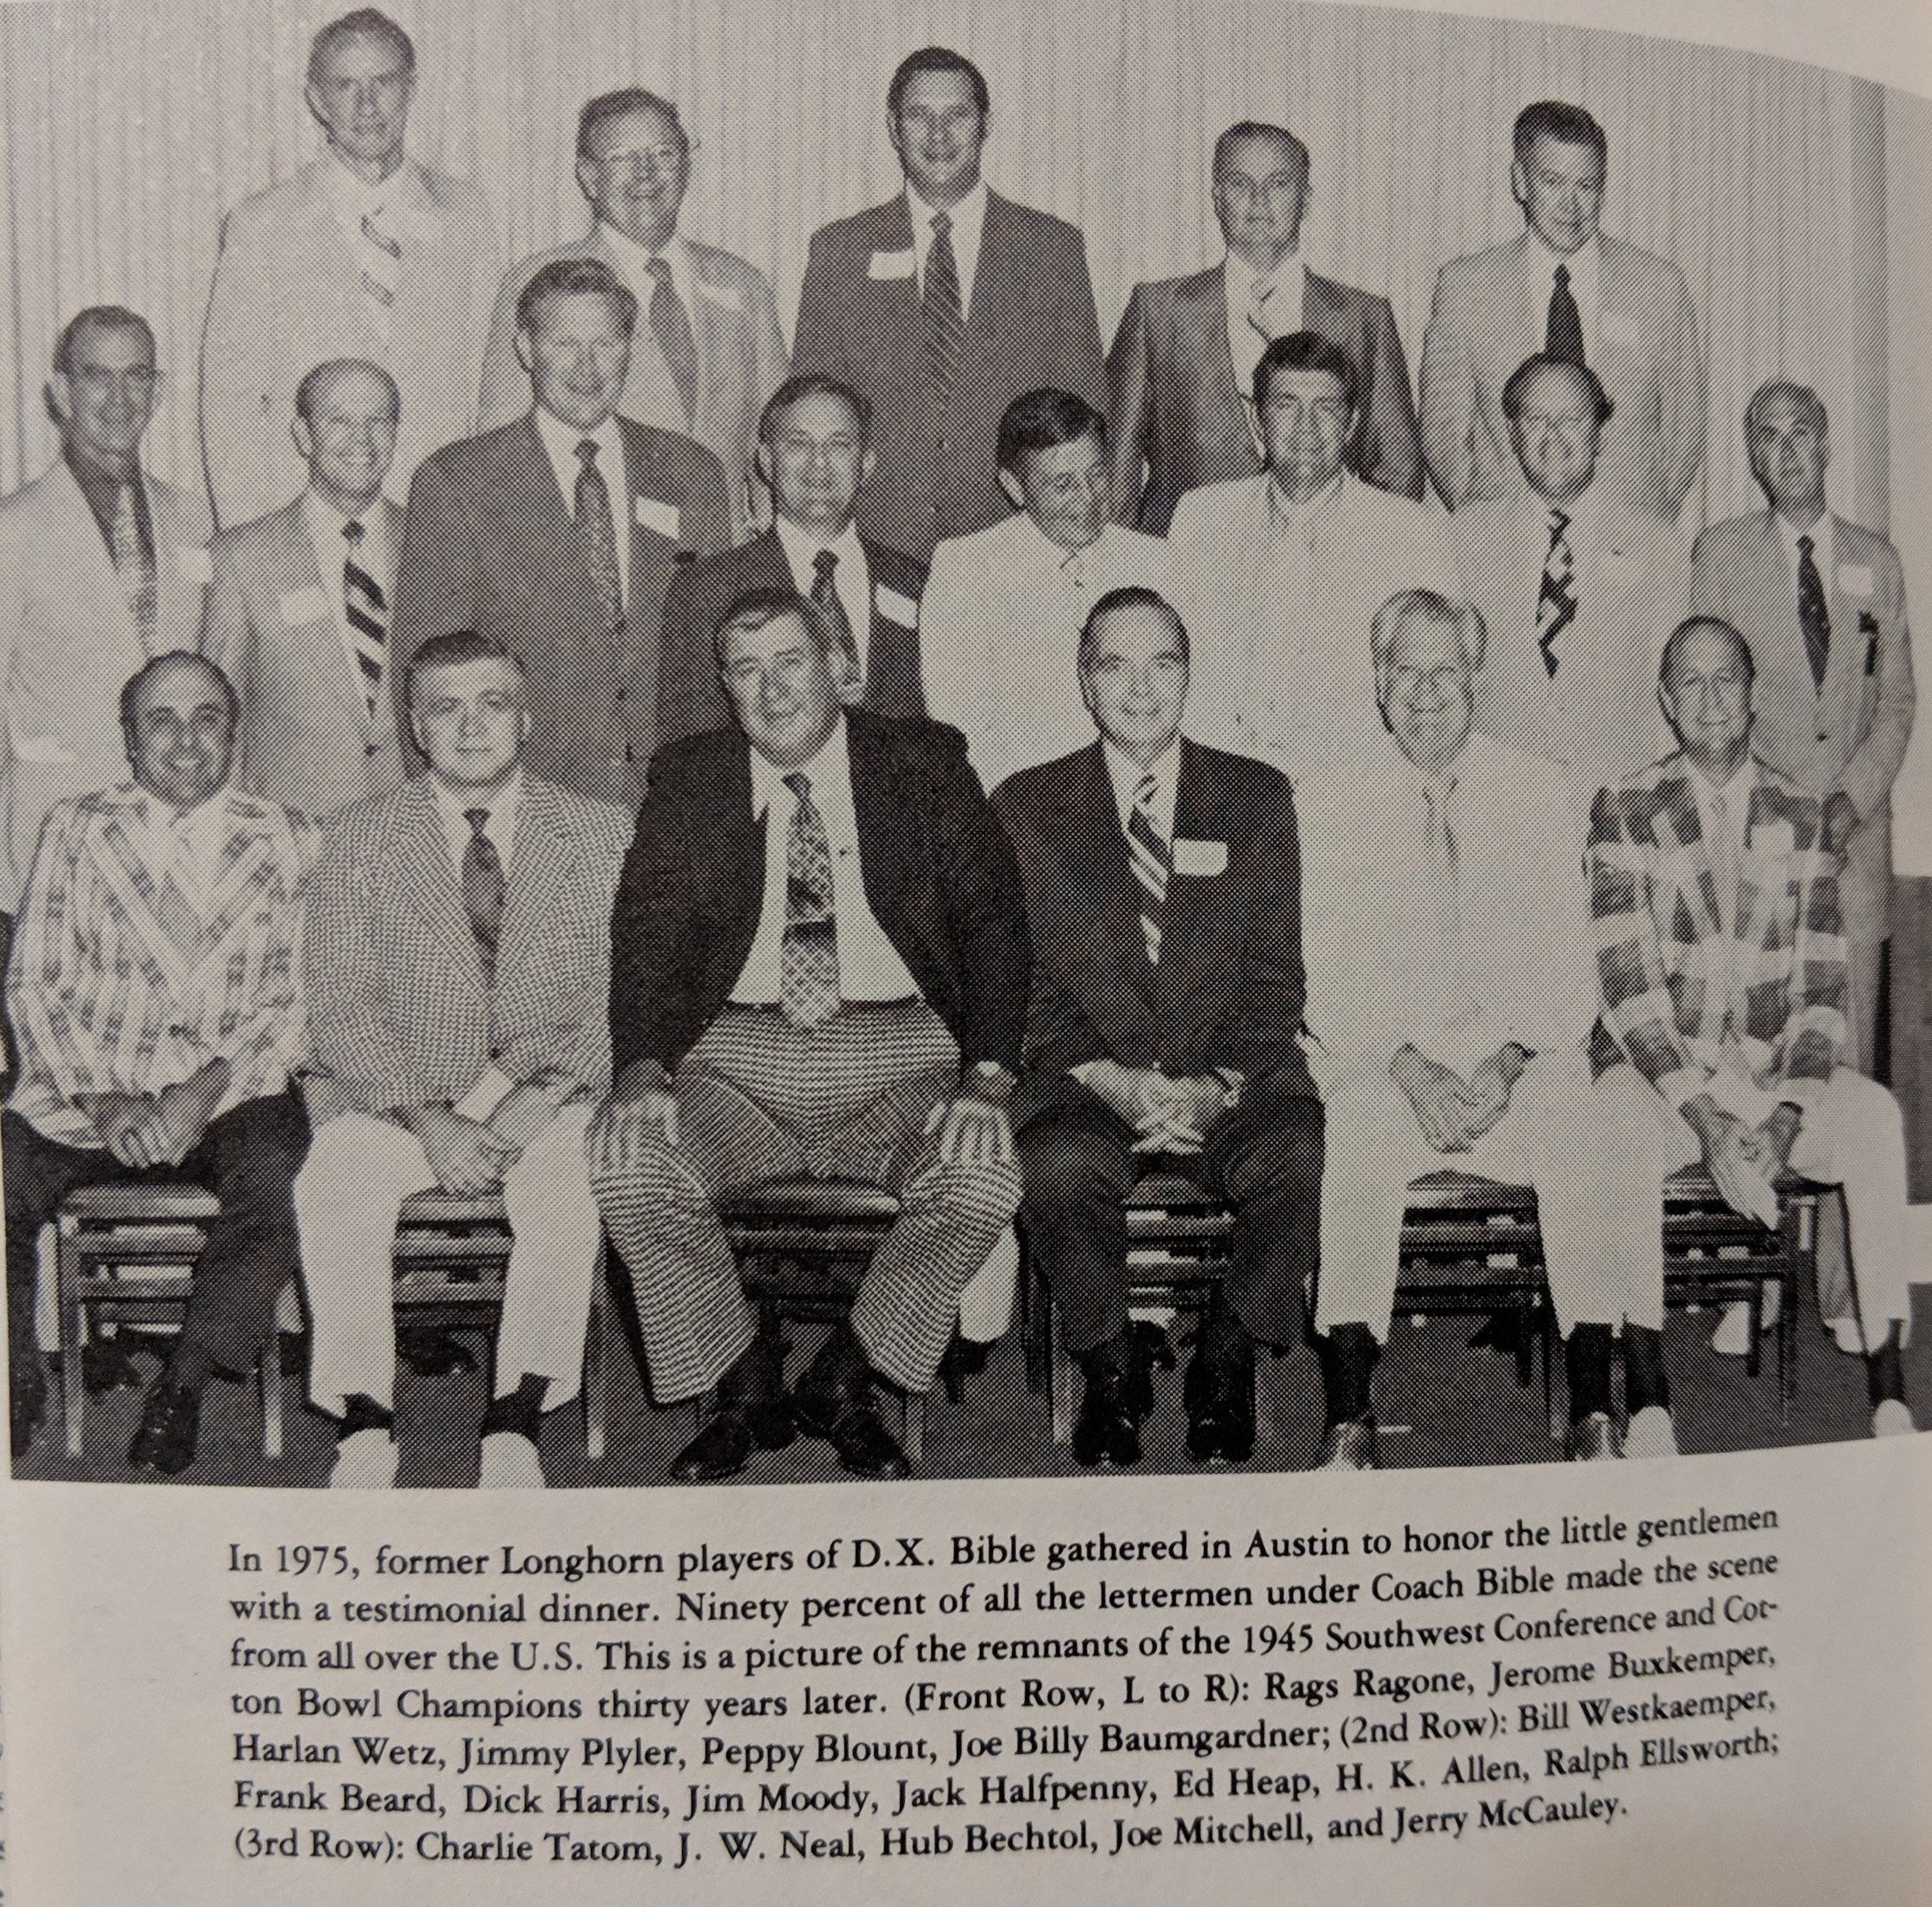 1975 reunion of the 1945 Cotton Bowl champs -